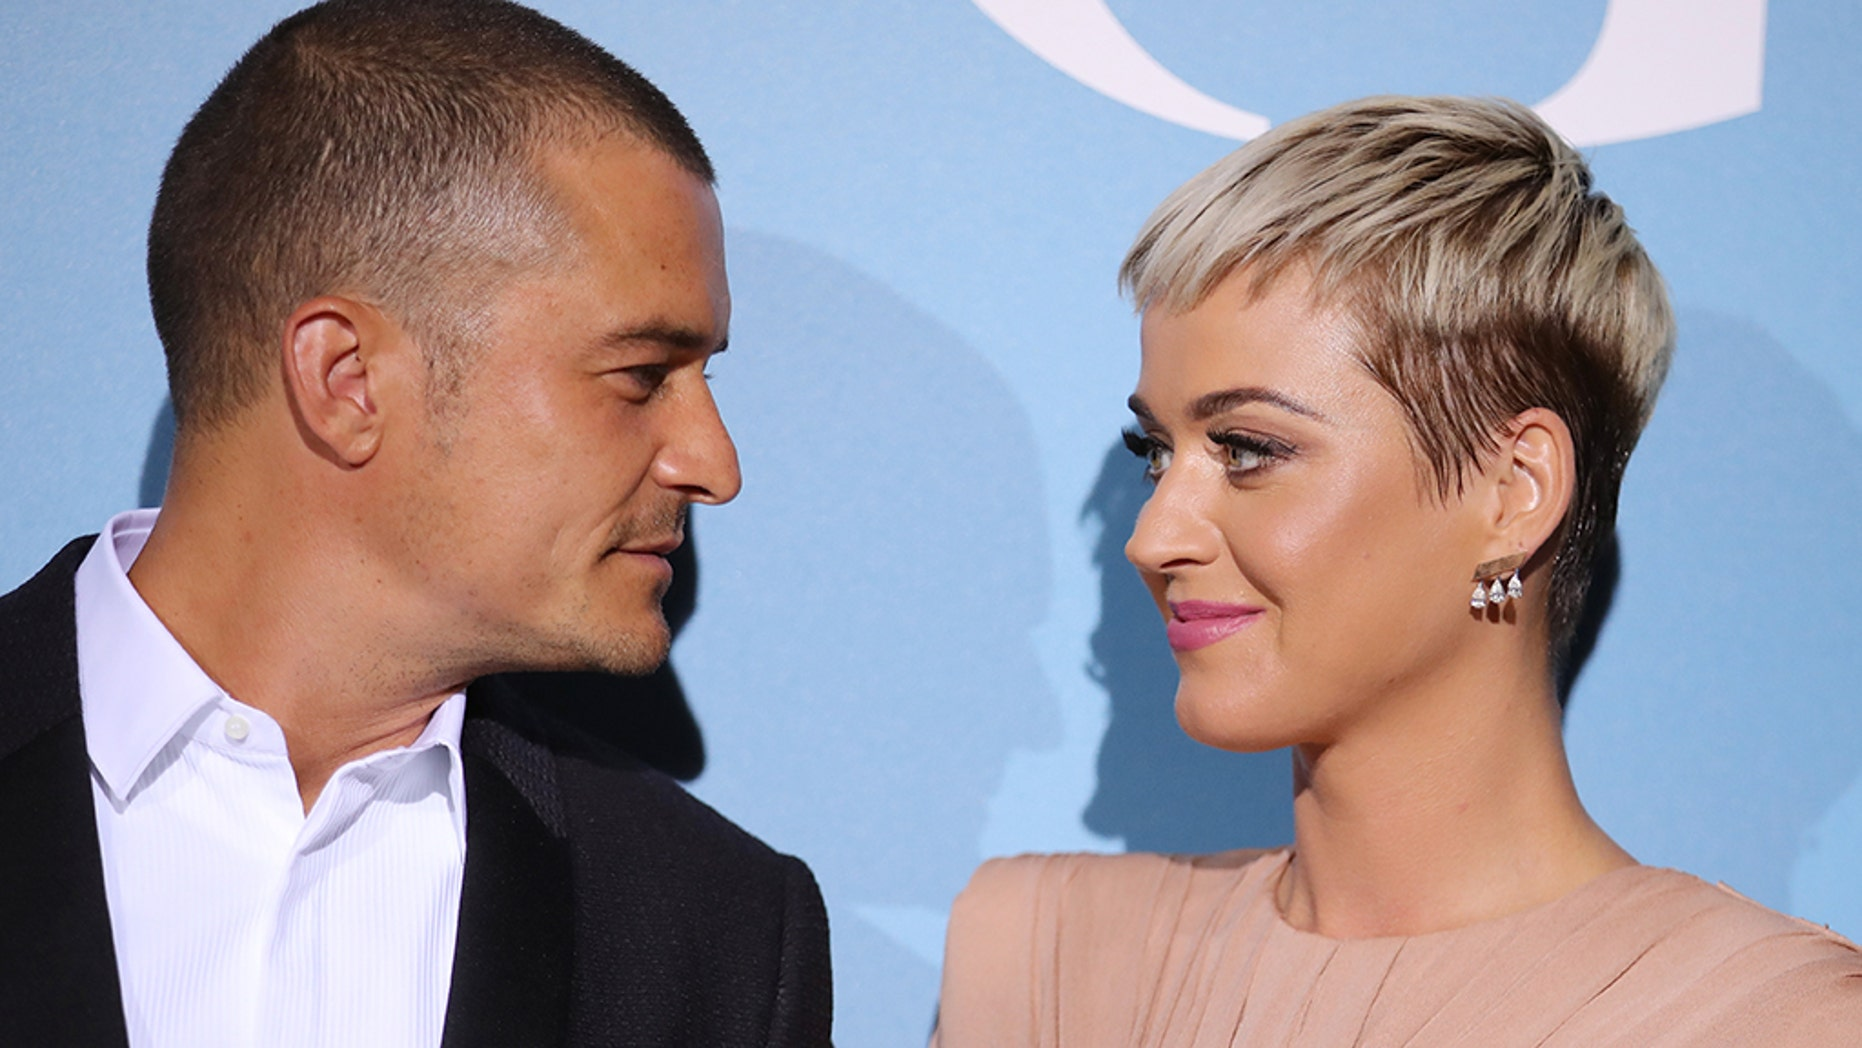 Katy Perry receives presents from Orlando Bloom's ex-wife, Miranda Kerr on her birthday.